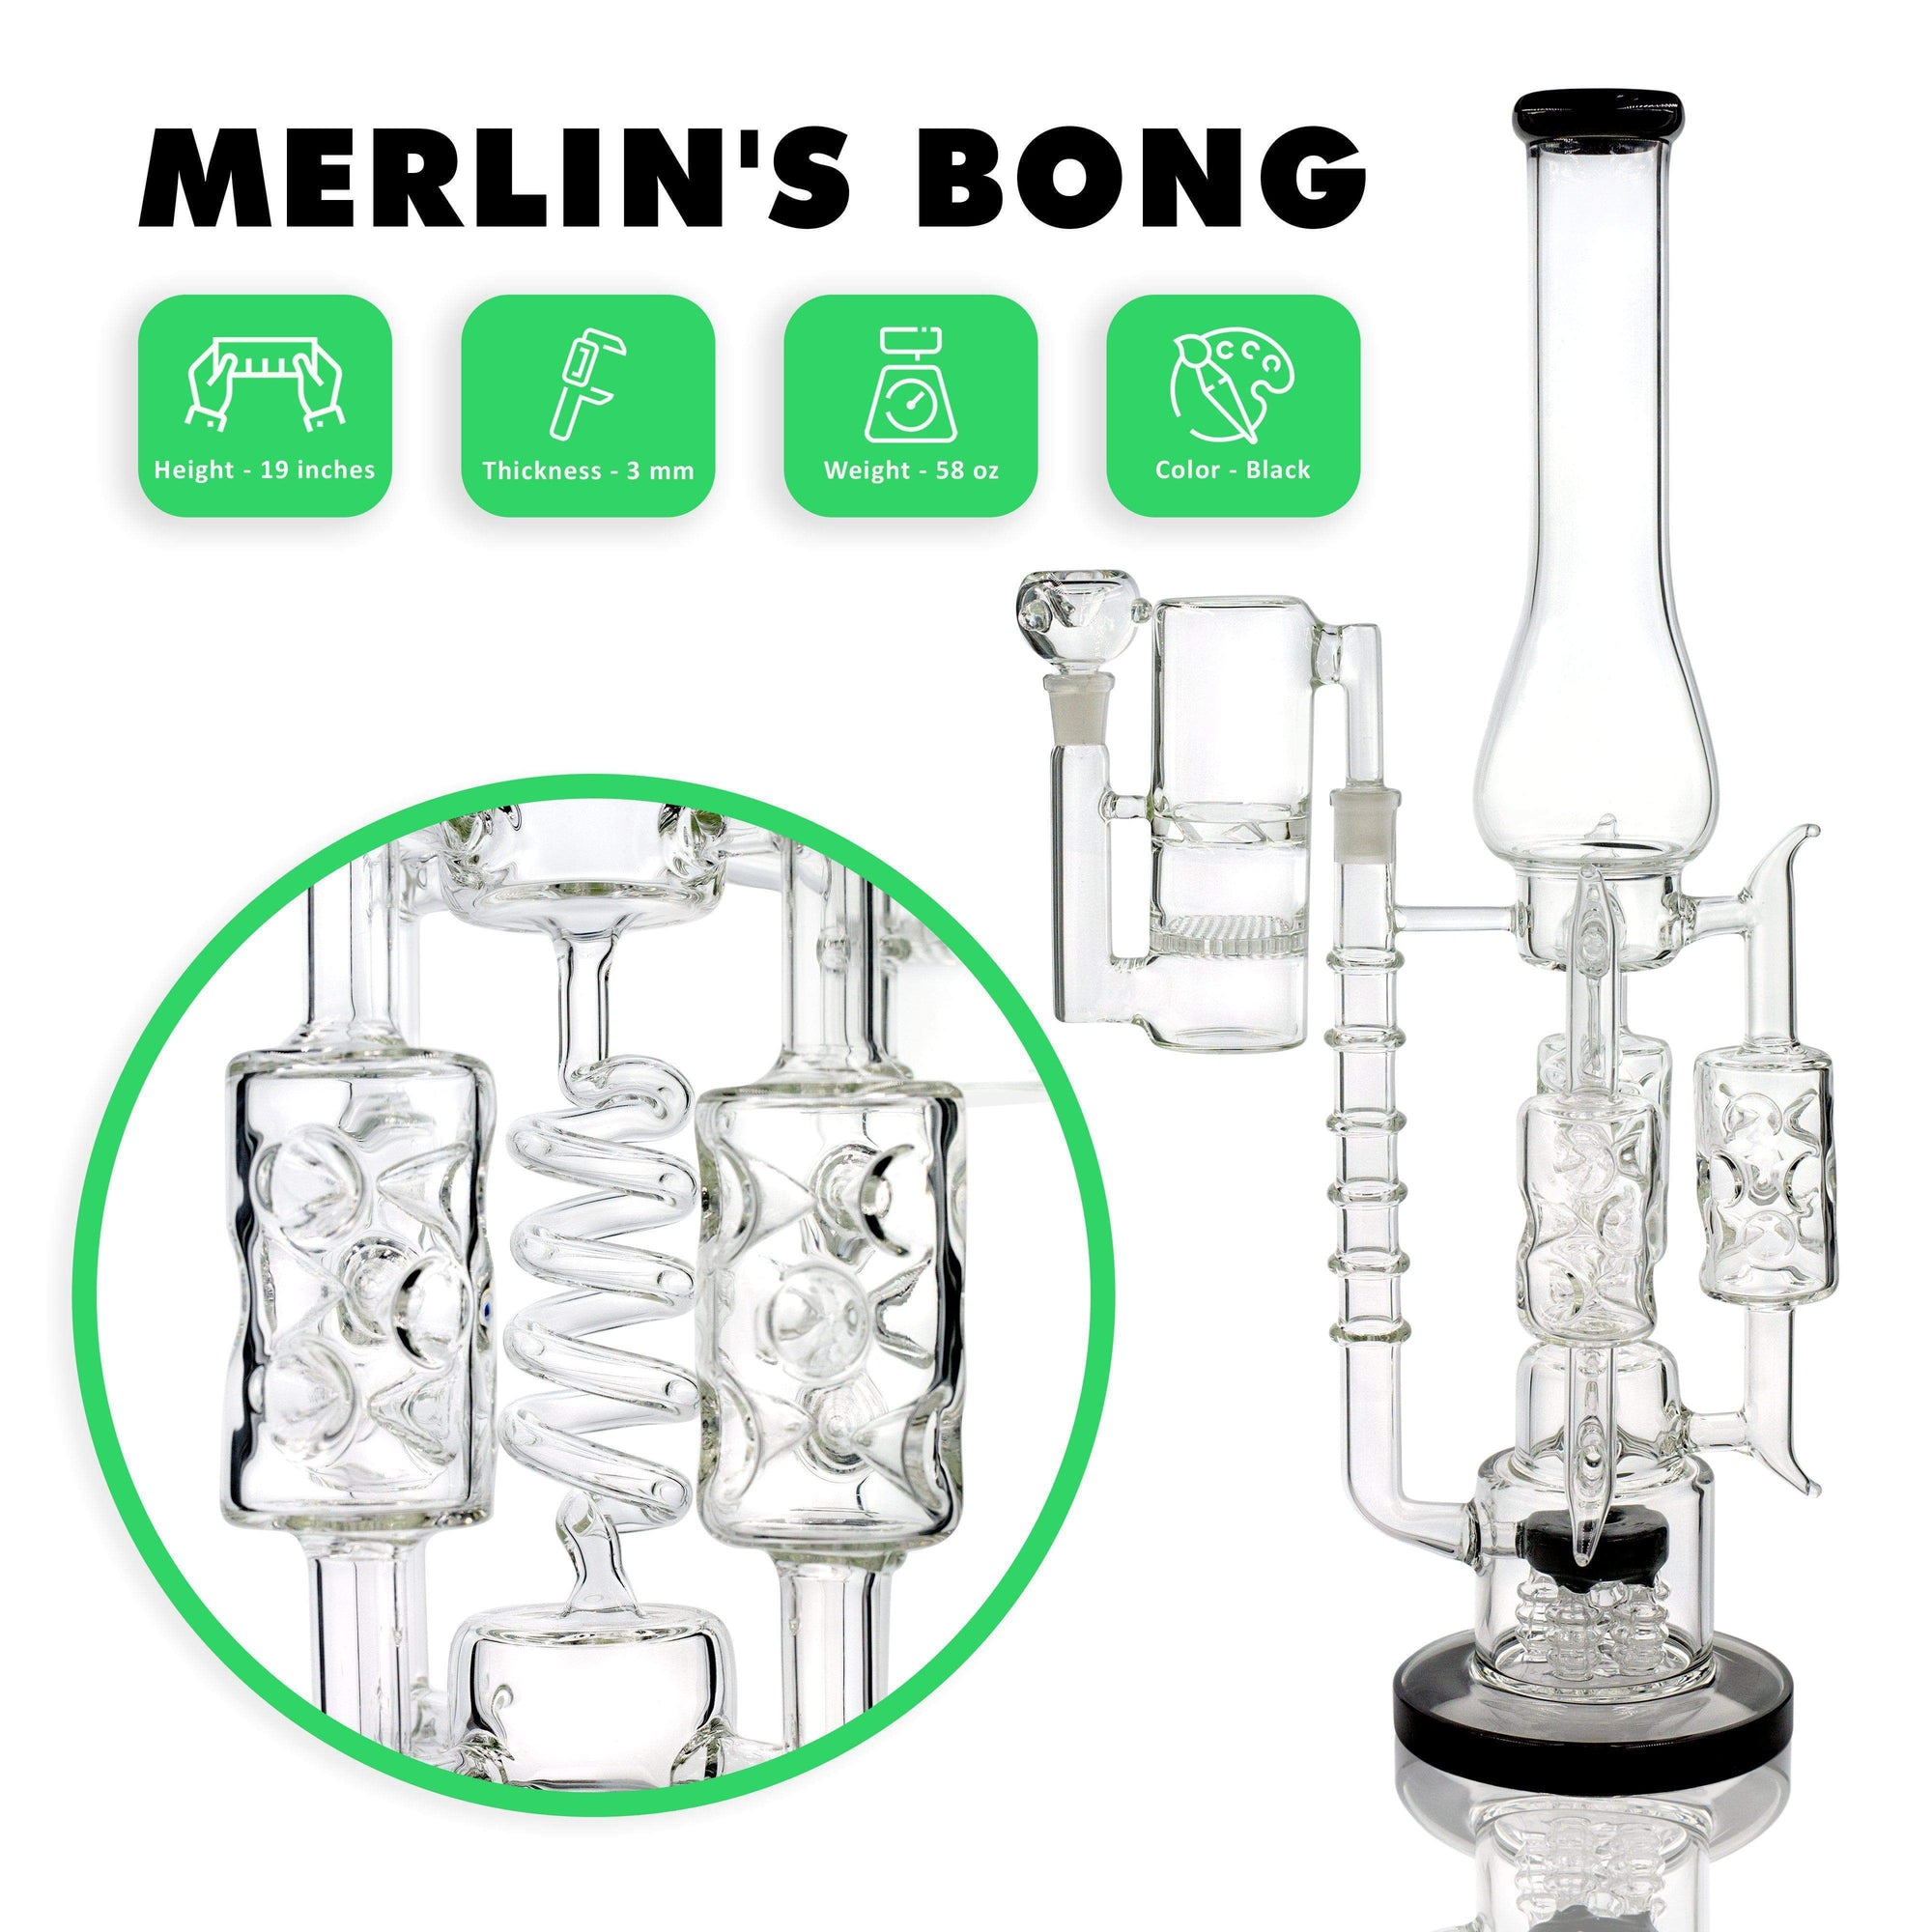 Intricate and detailed big 19-inch glass bong smoking device with honeycomb turbine inset 3 spiral percolators